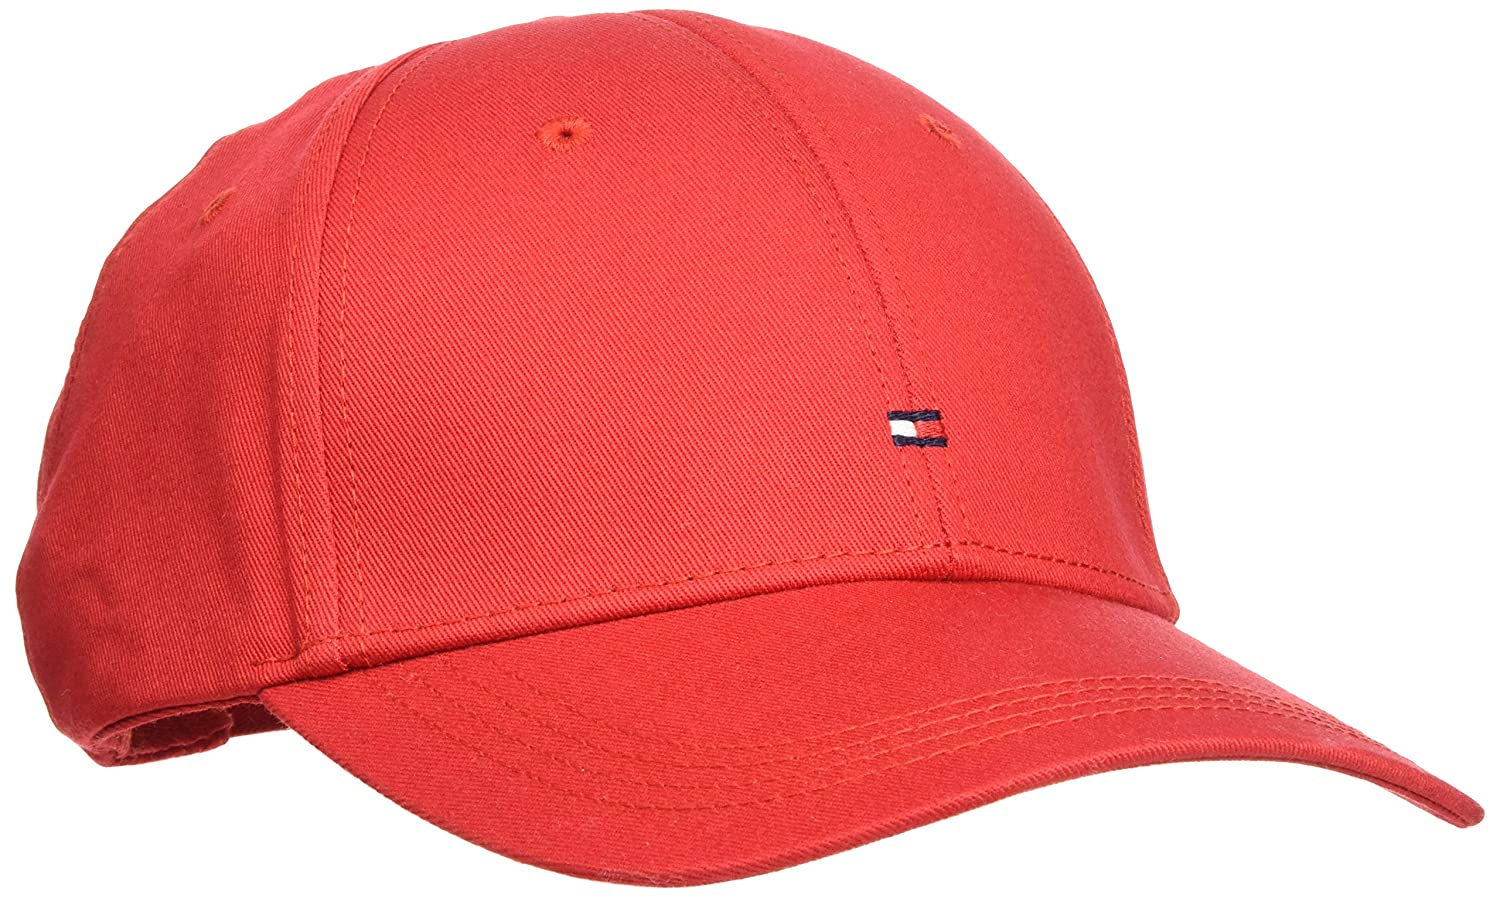 a4c6e33f91399a TOMMY HILFIGER Men's Classic Baseball Cap, Apple Red, ONE: Amazon.com.au:  Fashion